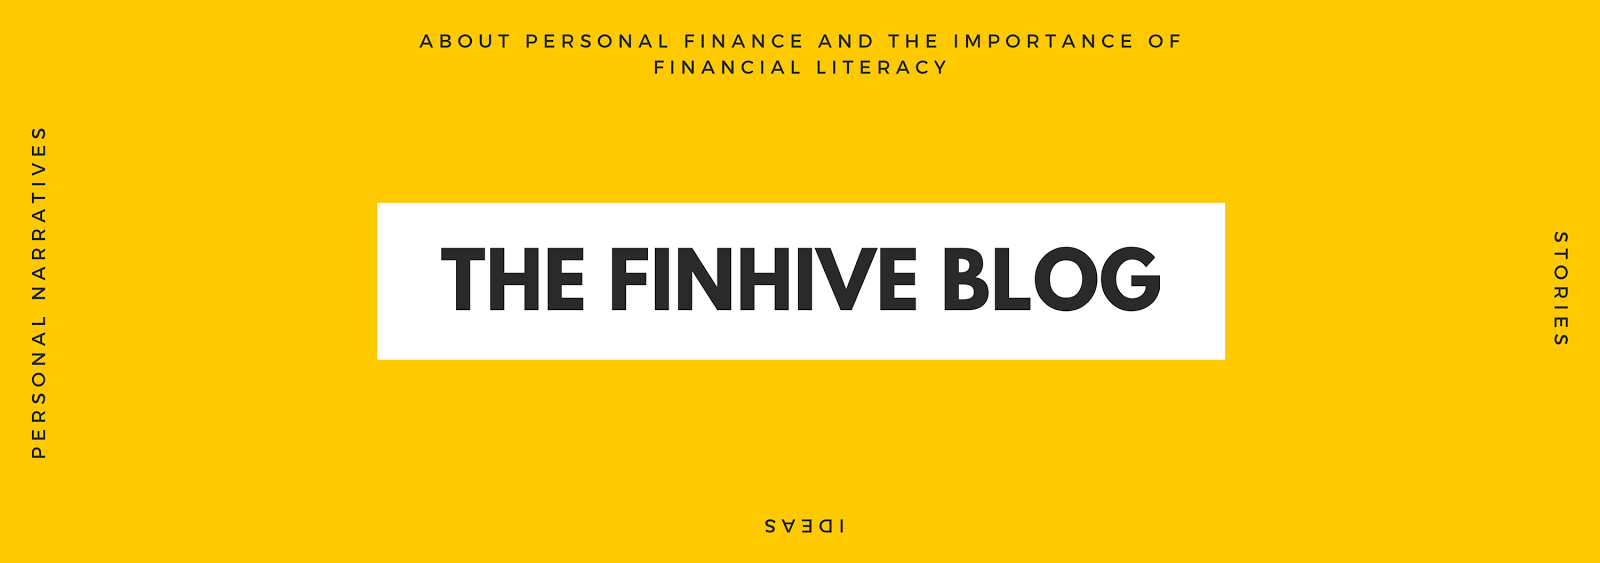 The Finhive blog